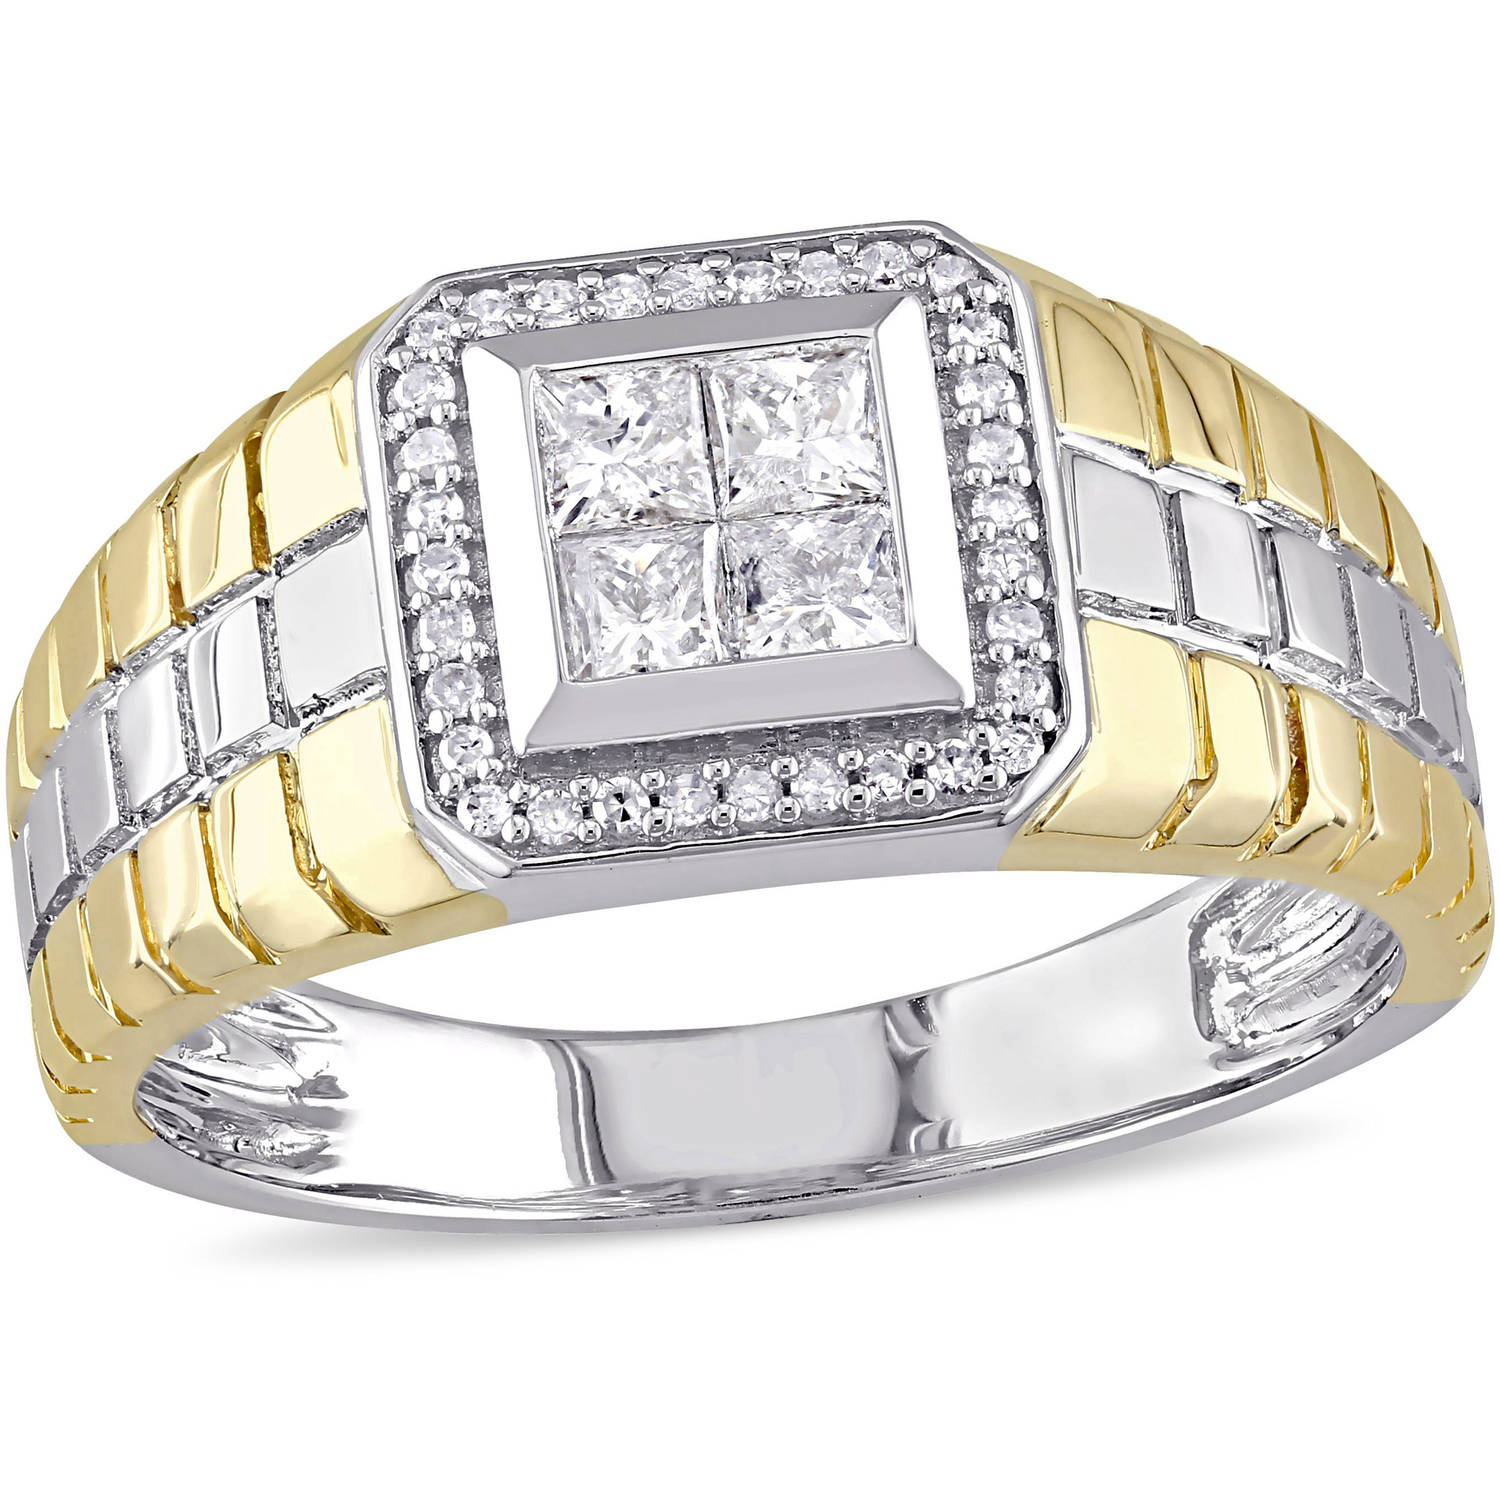 Miabella 1 2 Carat T.W. Princess and Round-Cut Diamond 10kt Two-Tone Gold Men's Ring by Miabella